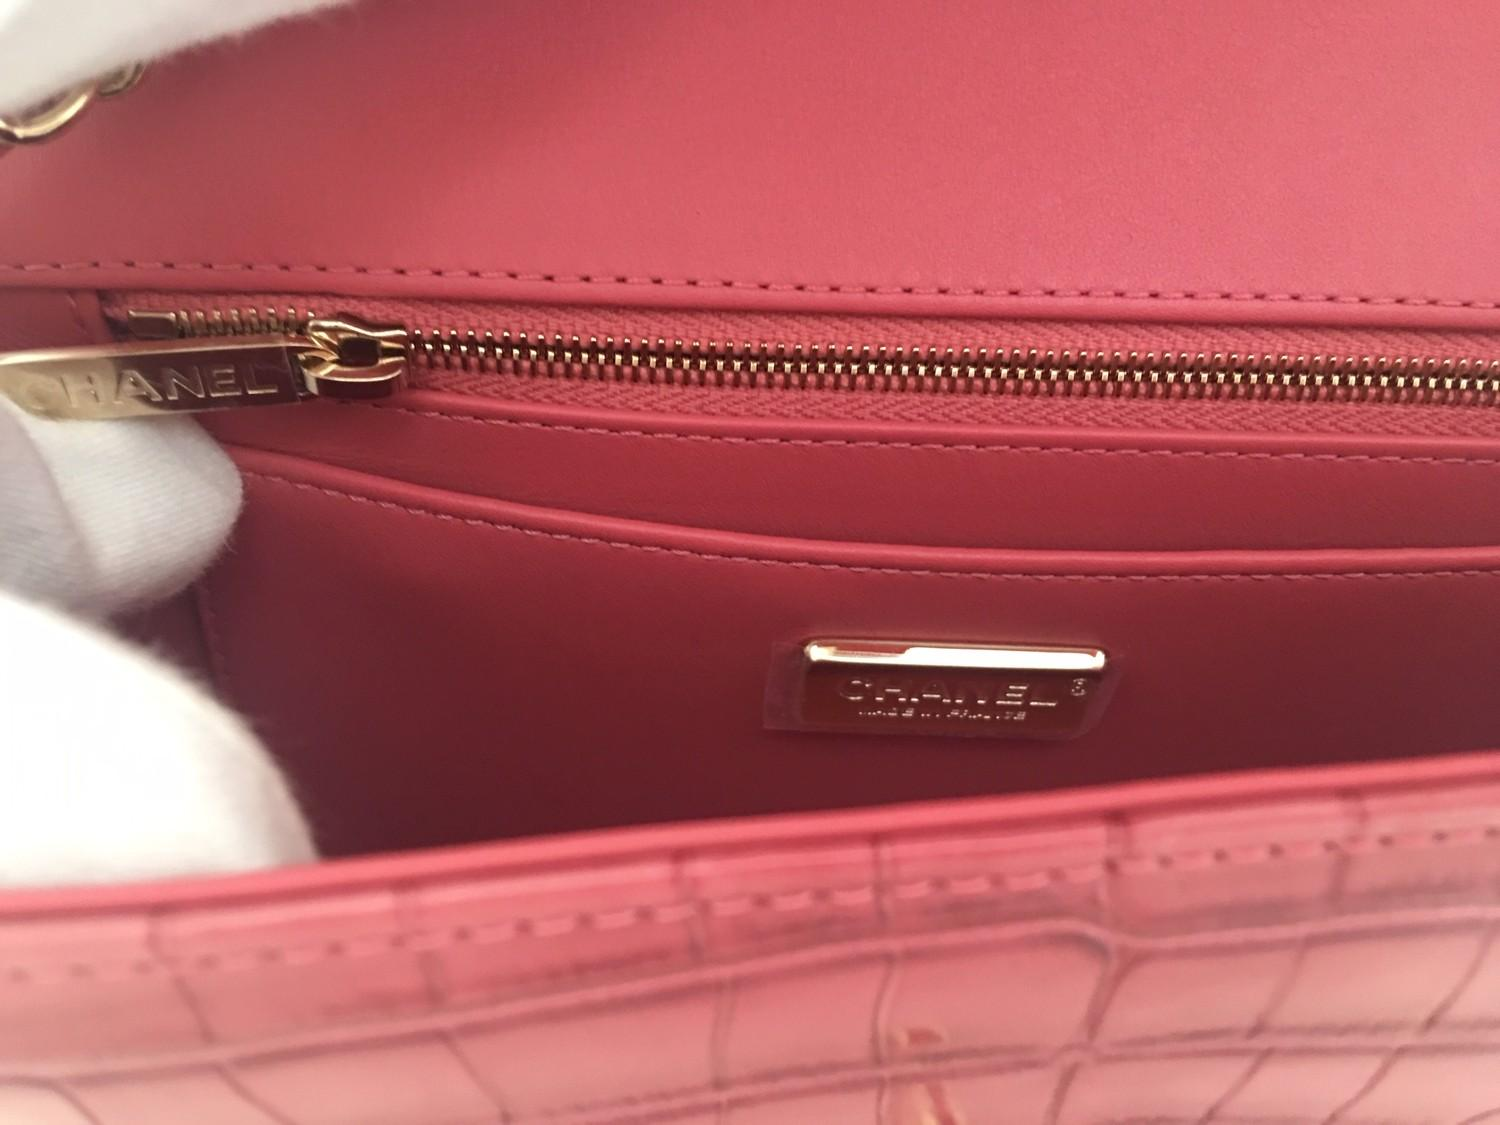 A Chanel Classic Flap in Dusky Pink Crocodile leather with Gold Hardware is instantly recognizable - Image 4 of 5